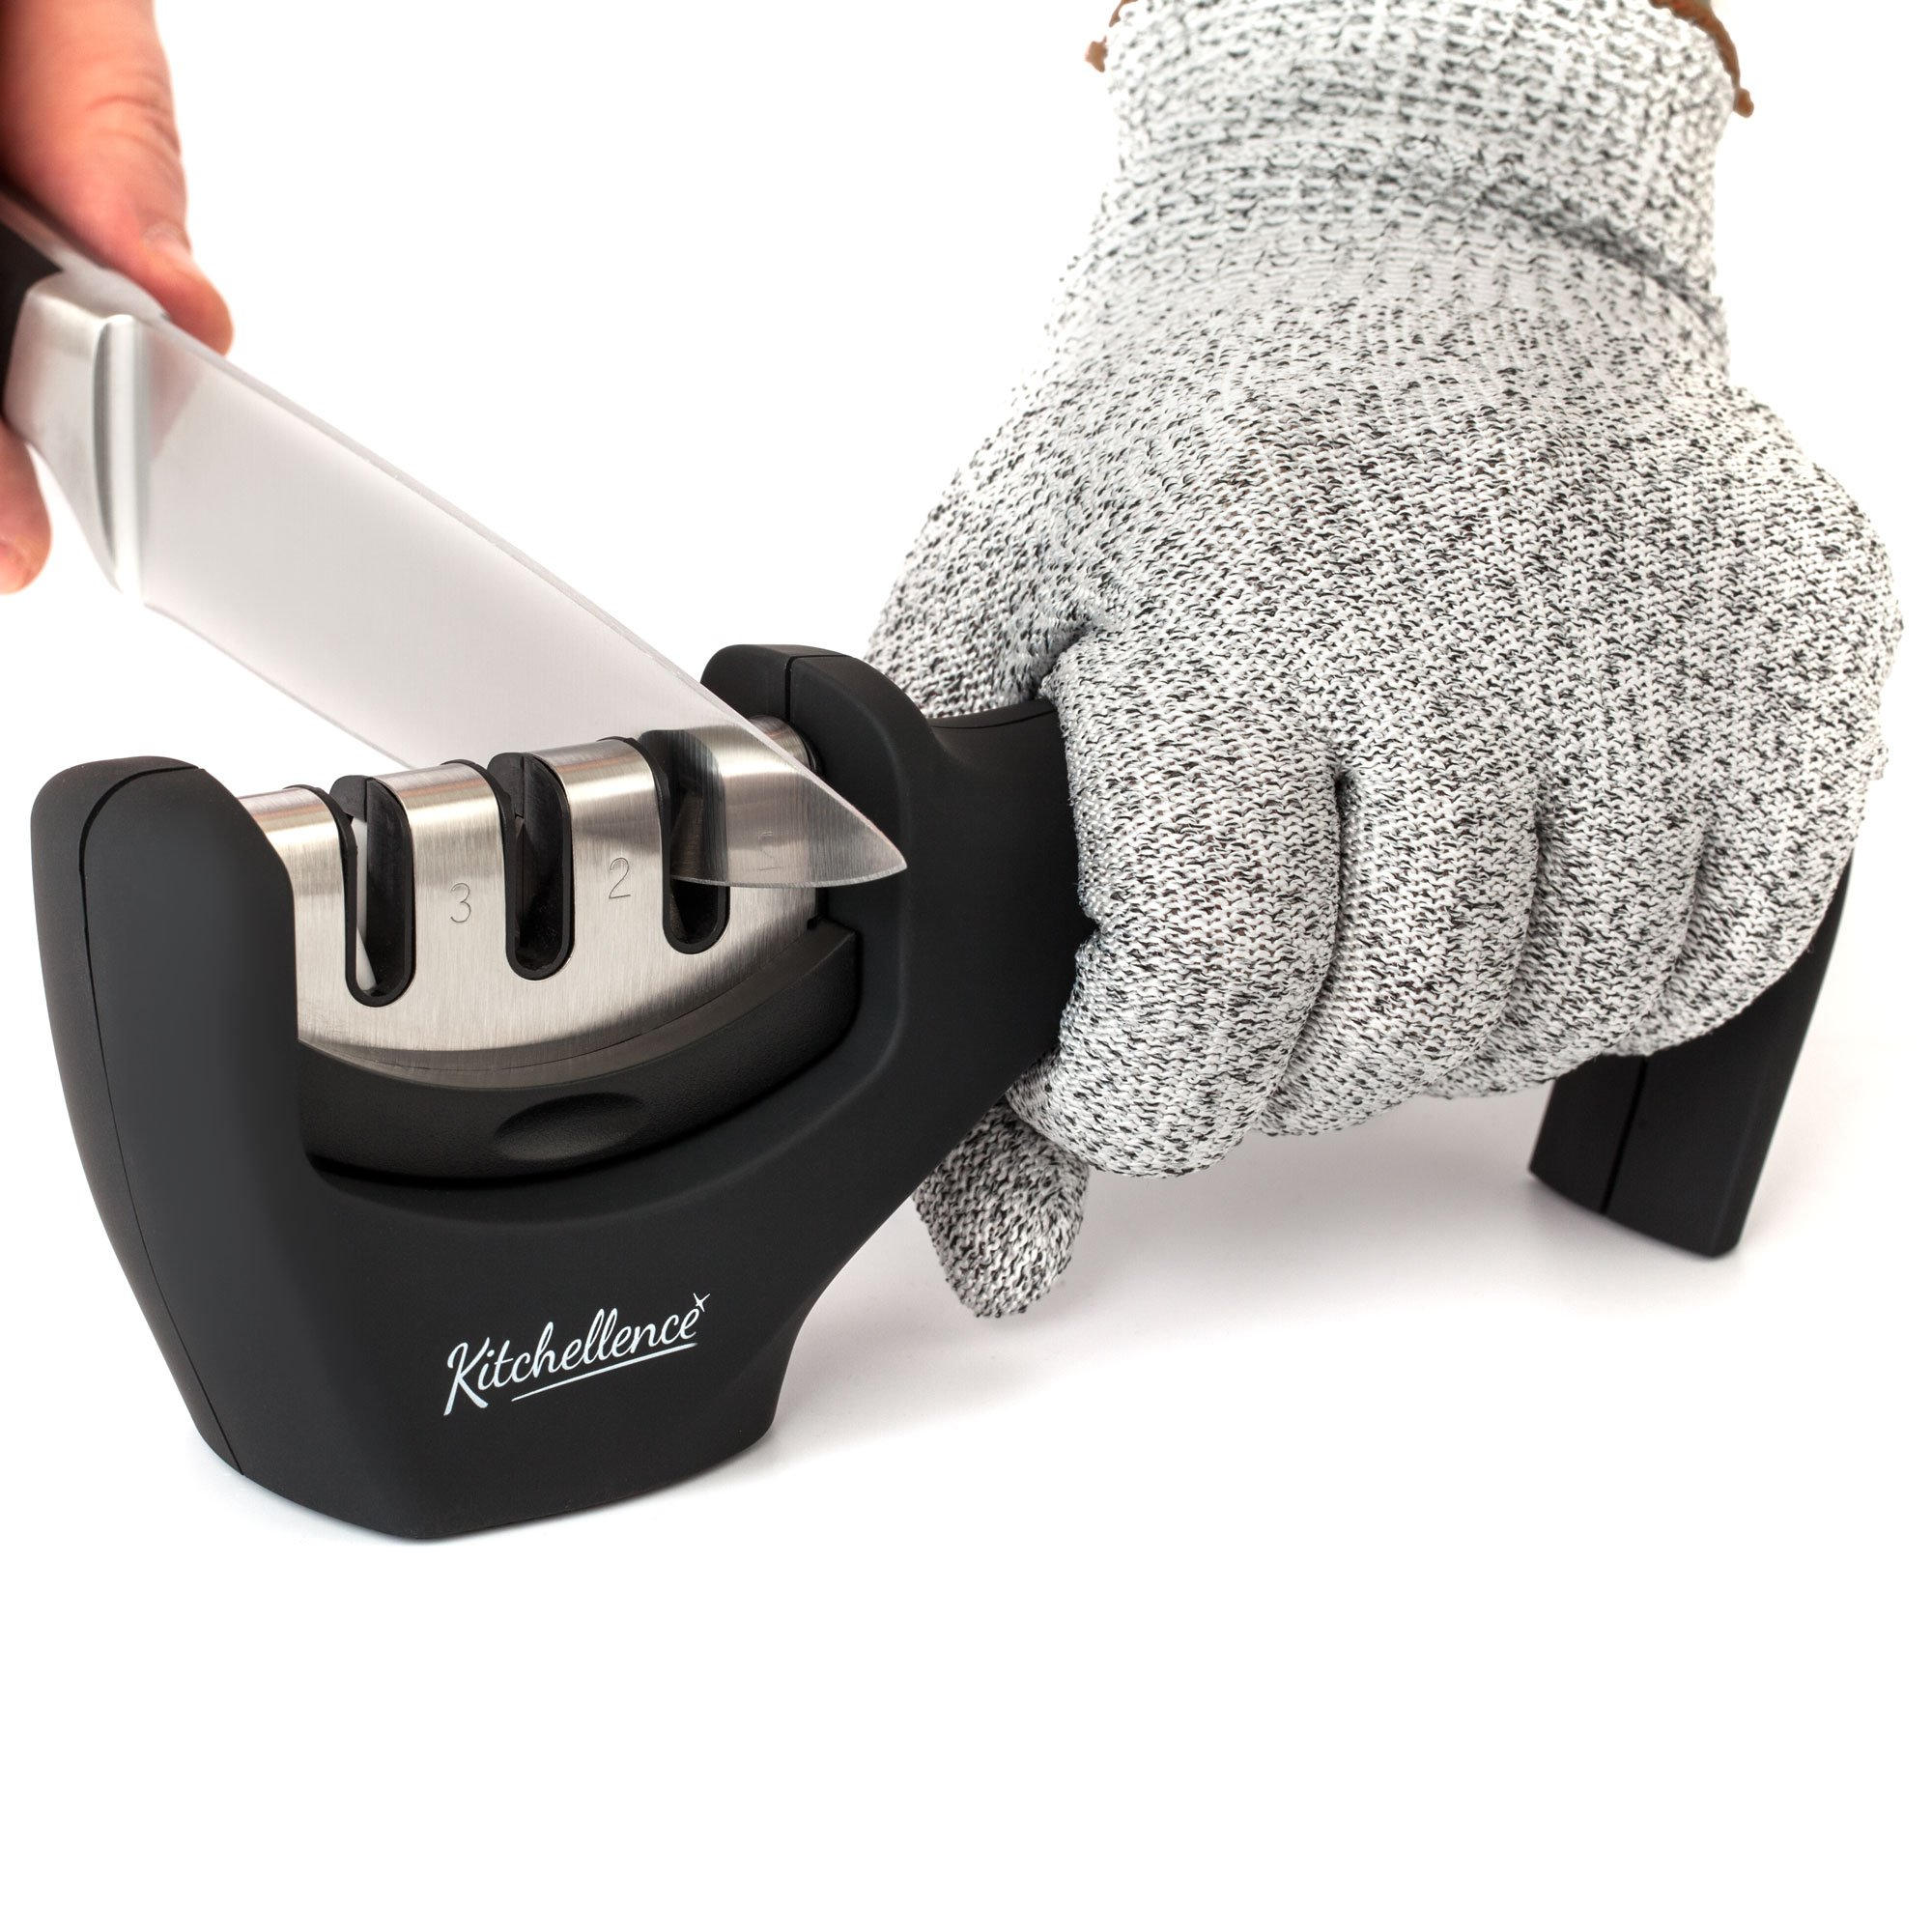 Kitchen Knife Sharpener - 3-Stage Knife Sharpening Tool Helps Repair, Restore and Polish Blades - Cut-Resistant Glove Included